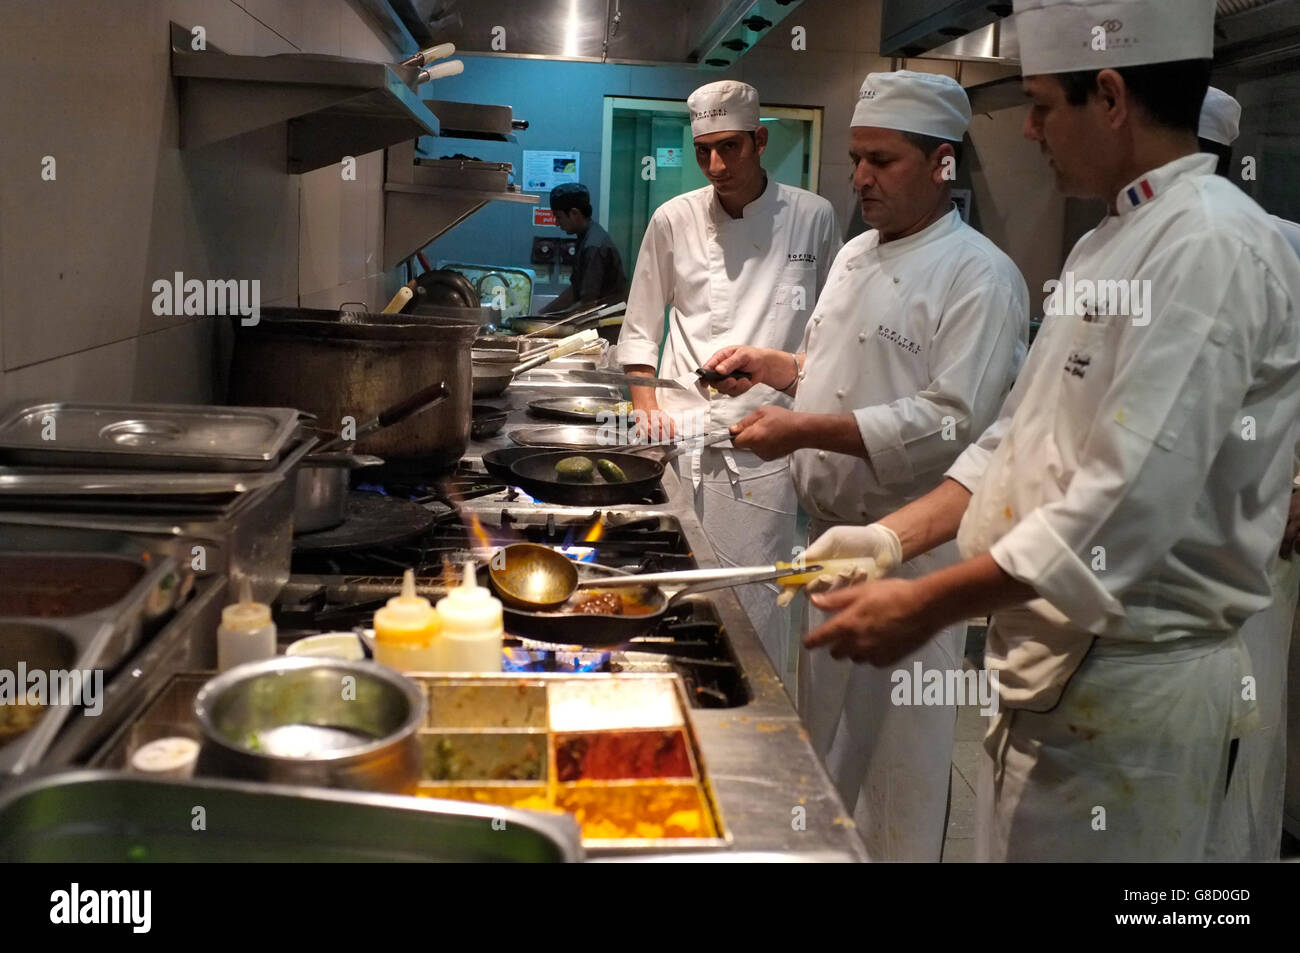 Buy Kitchen Equipment For Restaurant